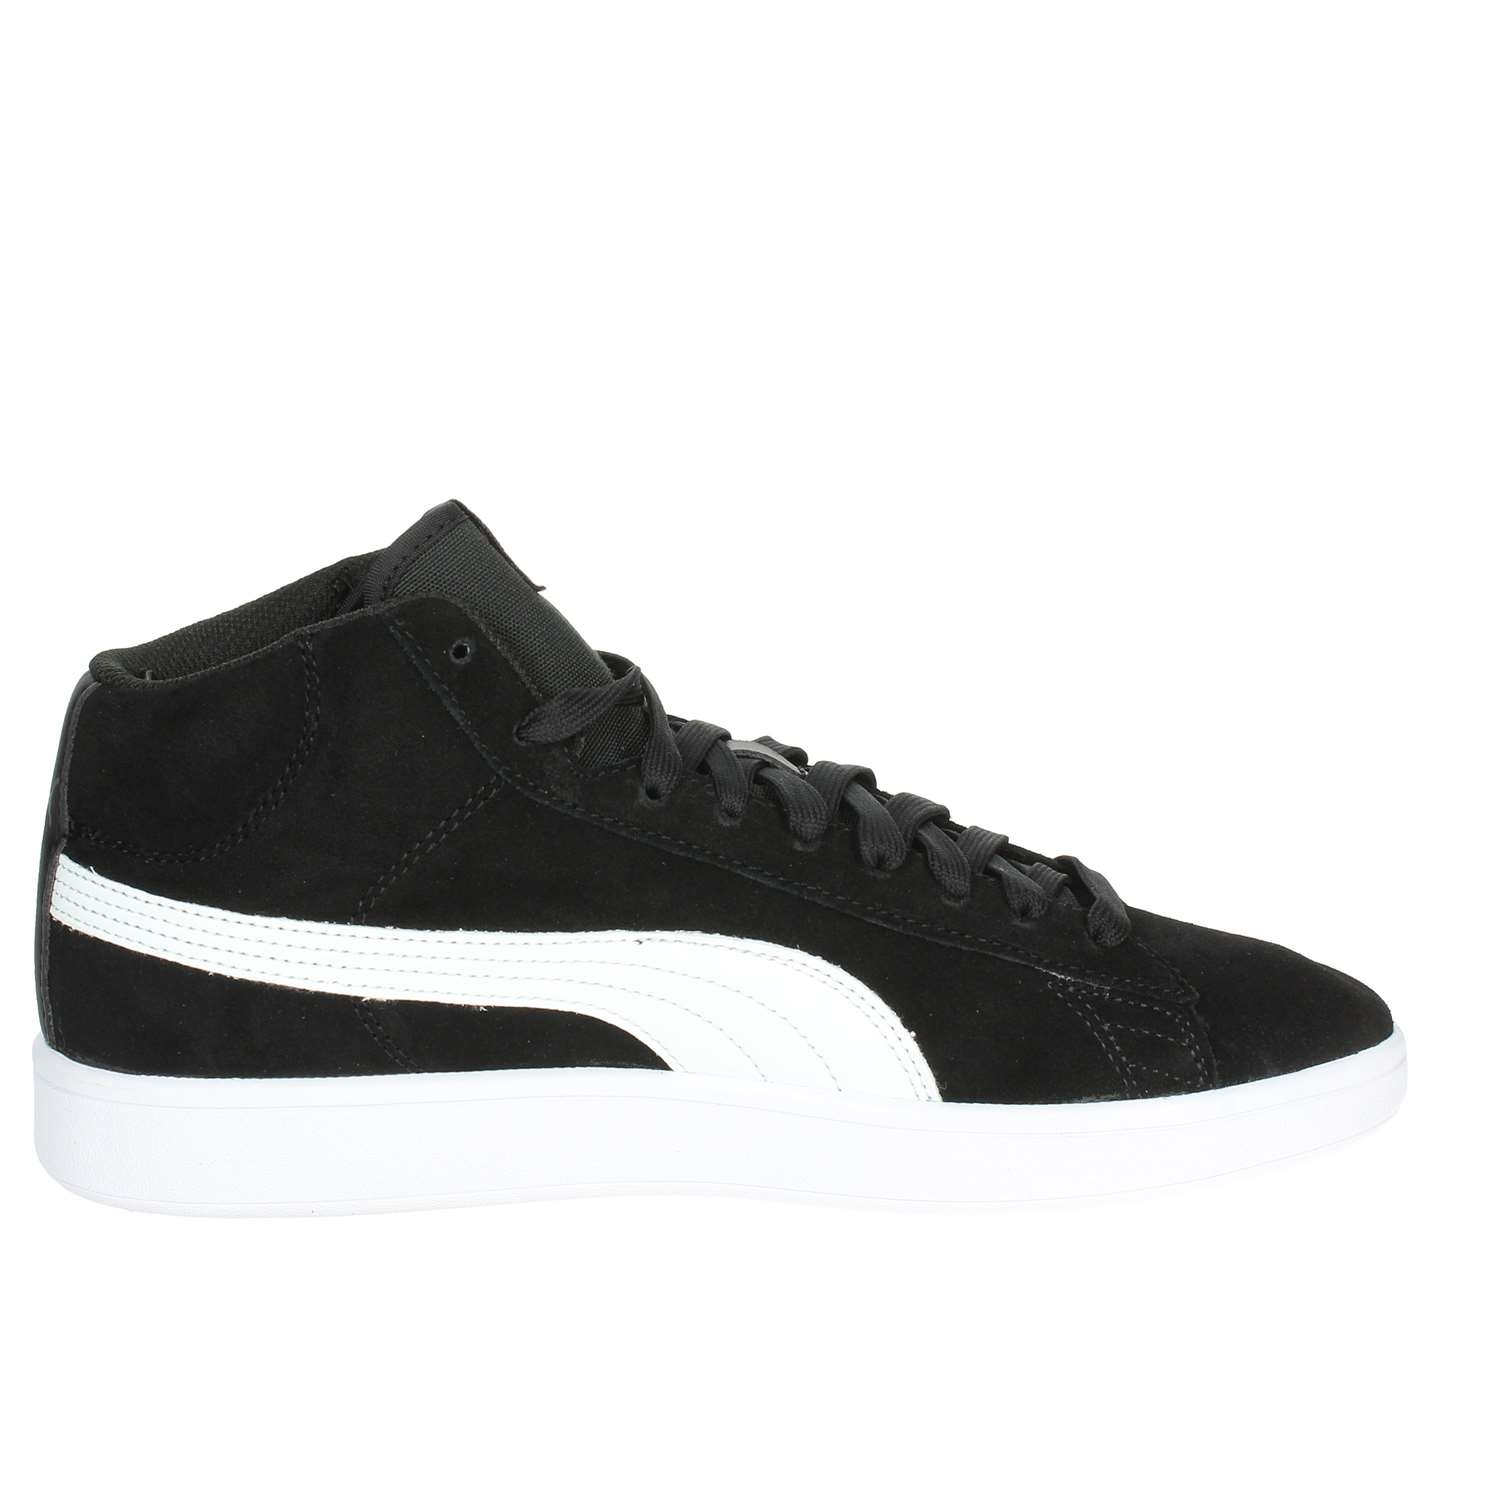 SNEAKERS PUMA SMASH V2 MID SD 366923-01 BLACK-WHITE